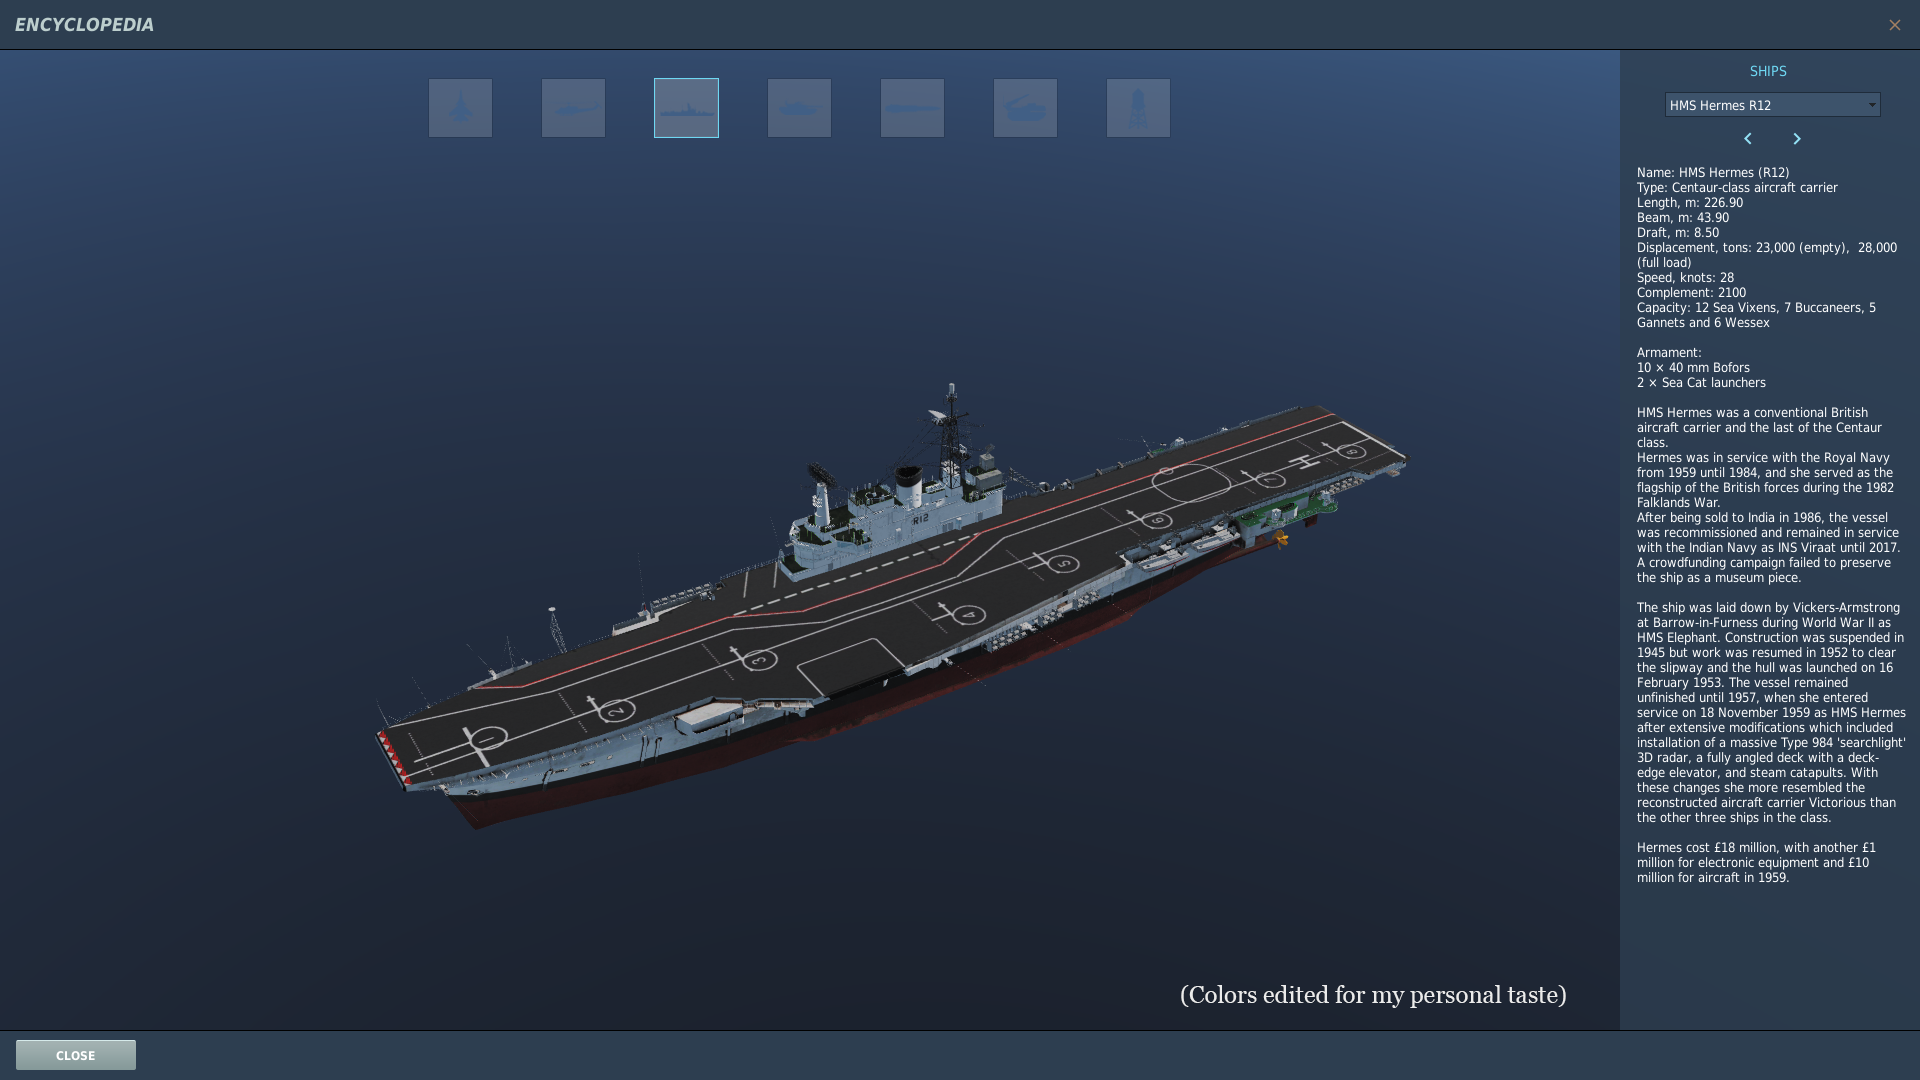 HMS Hermes R12 Version 2 Phase 1 Encyclopedia